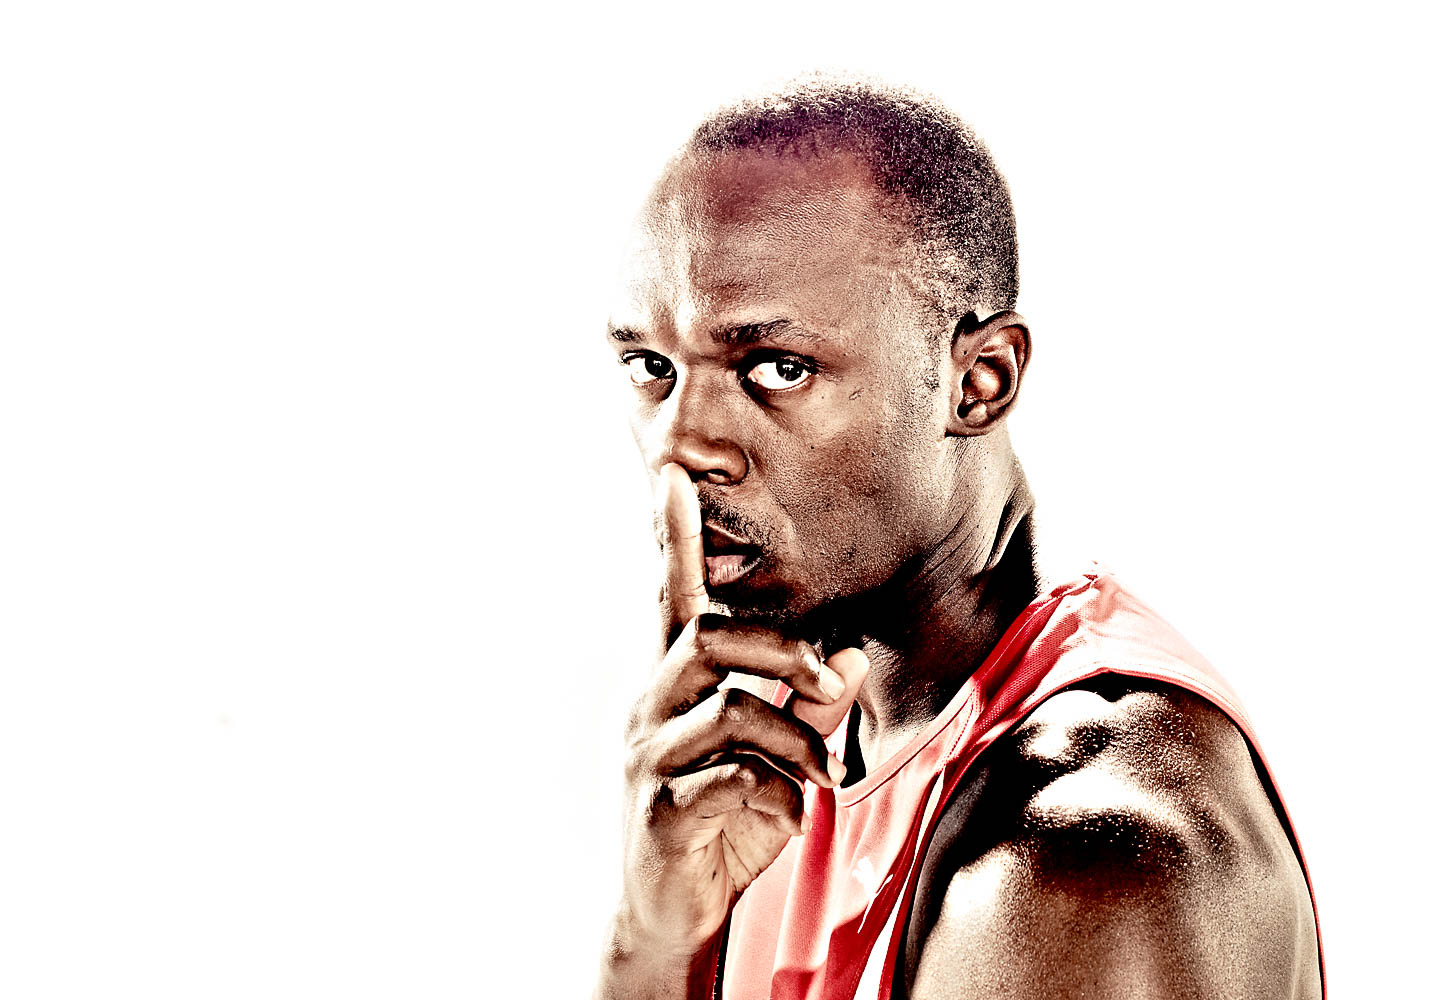 portrait photo of Usain Bolt on white background